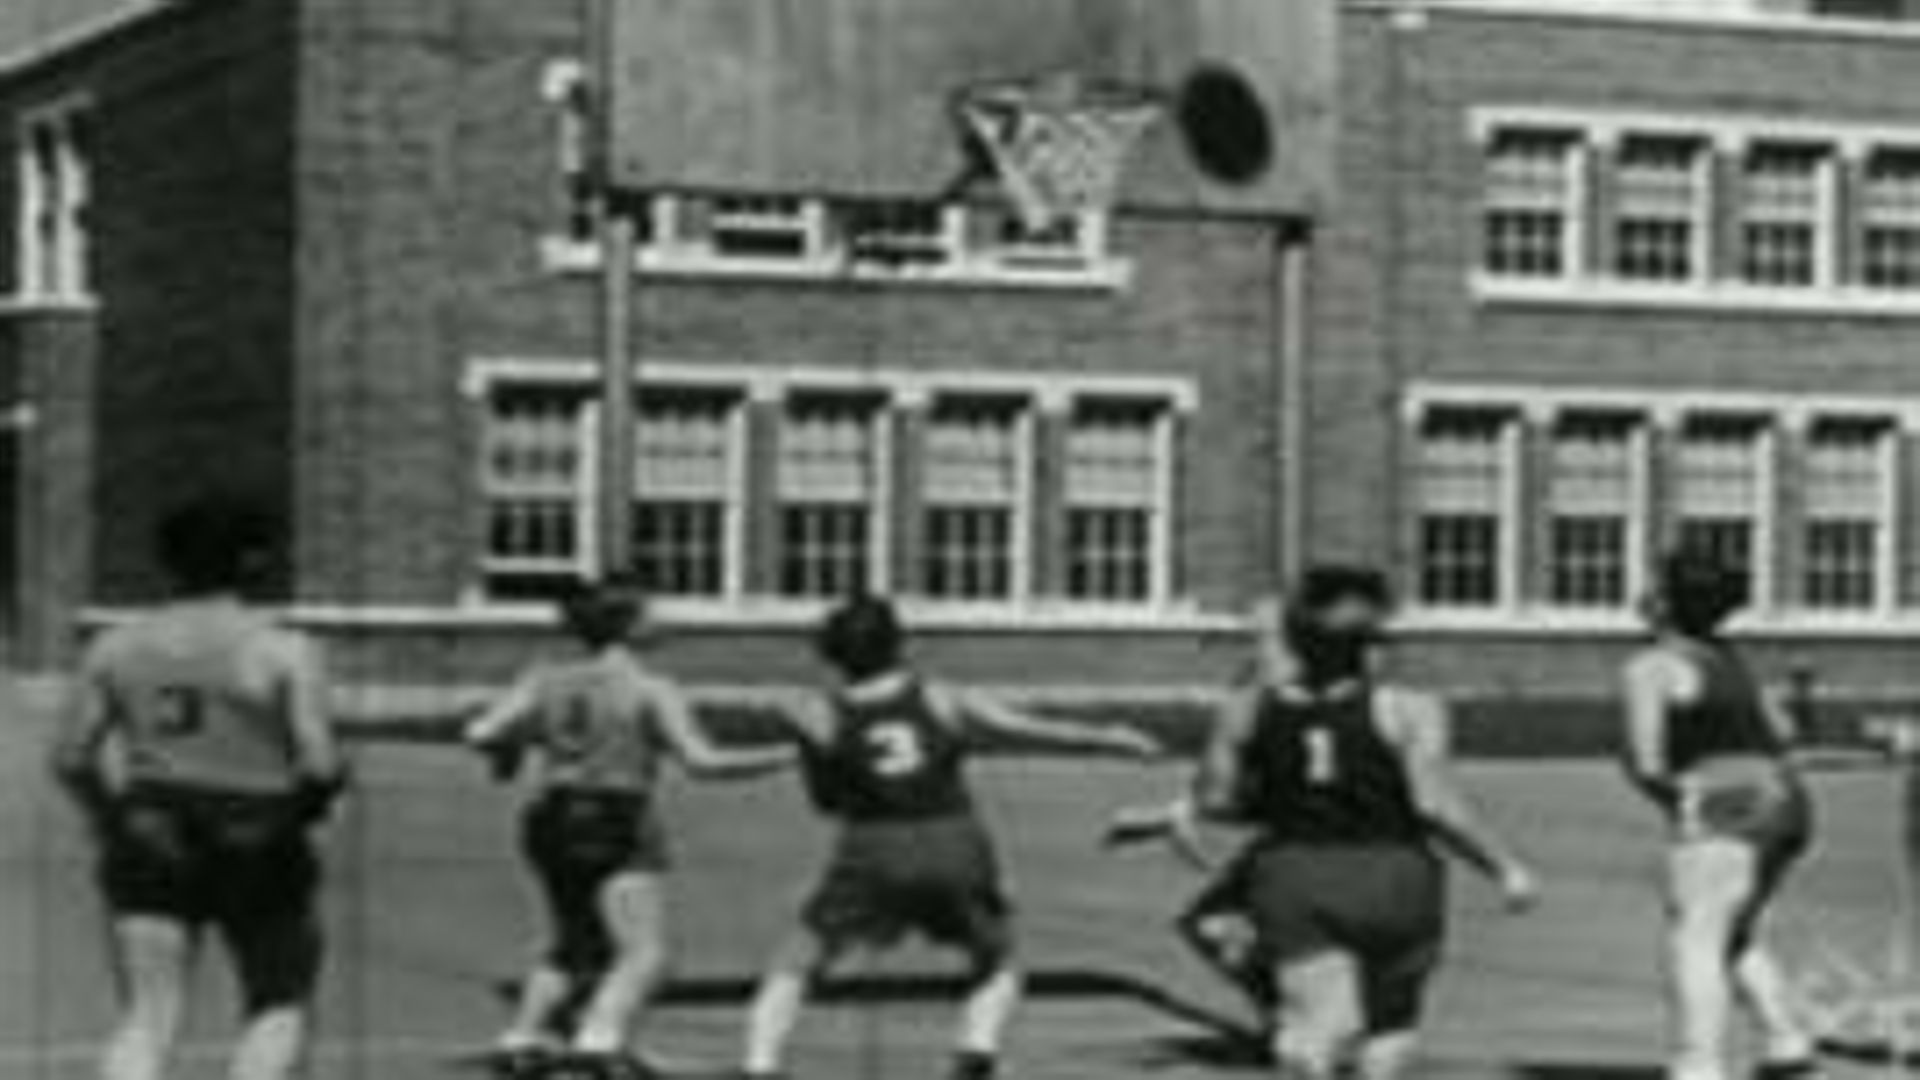 """How does physics impact your game? John Fontanella, a physicist at the U.S. Naval Academy and author of """"The Physics of Basketball,"""" explains the role of physics in basketball in this video segment. From foul shots to side-arm passes, find out what forces are acting on the ball, and what players have to do to correct for these forces."""